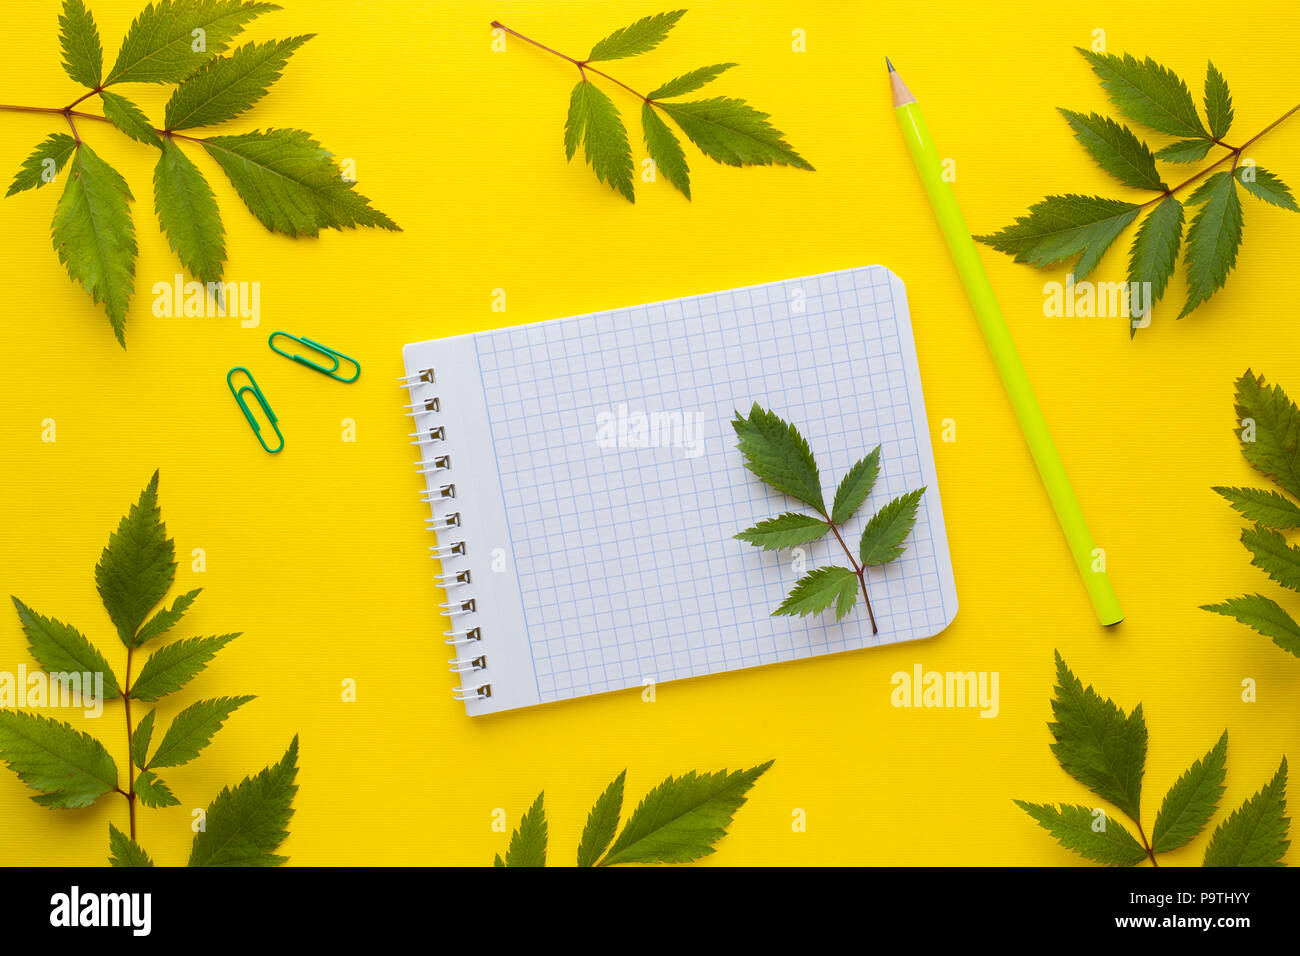 business concept notebook and stationery on a yellow background